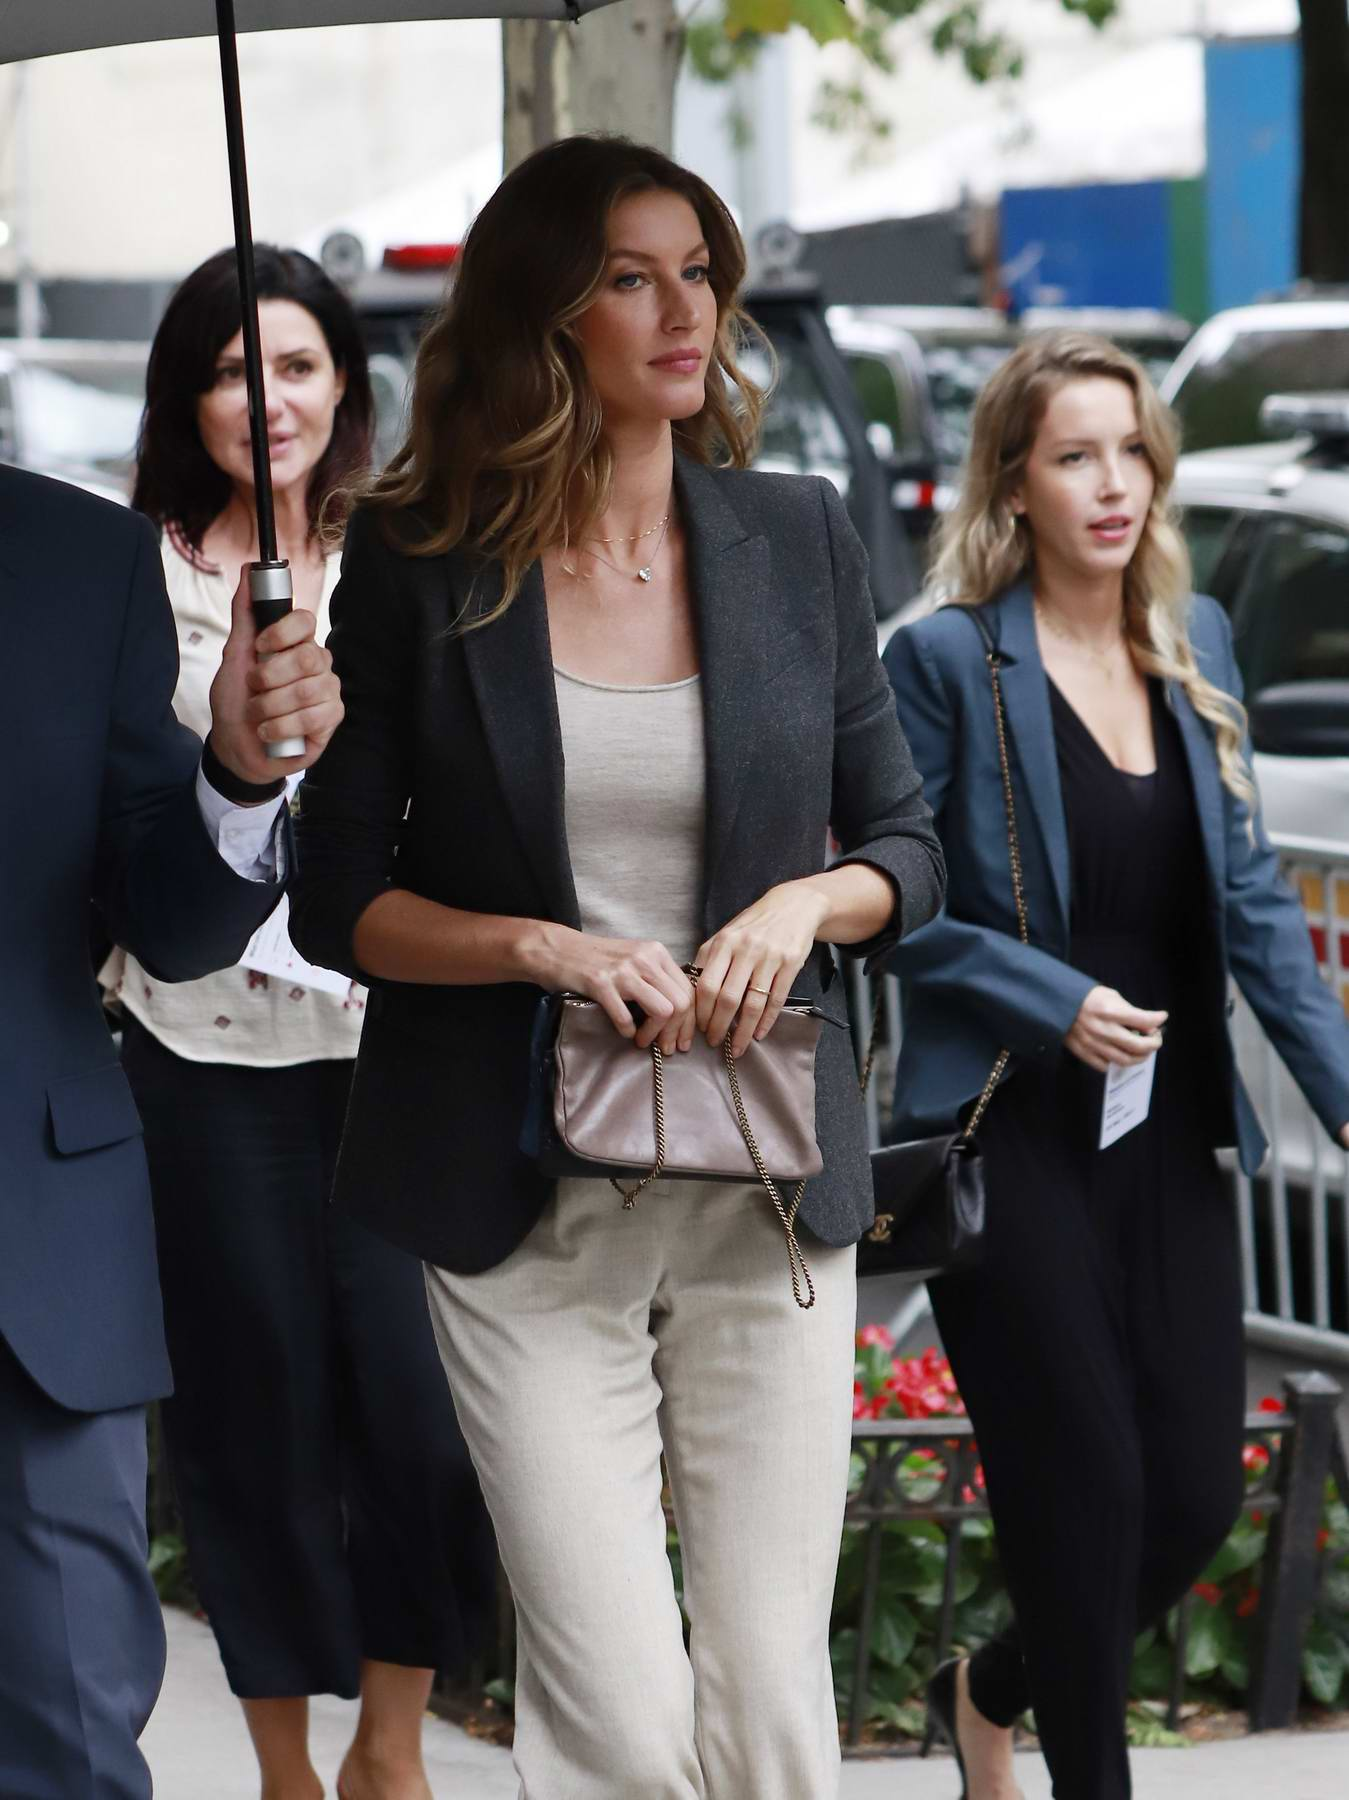 Gisele Bundchen arrives to attend meetings at the United Nations in New York City